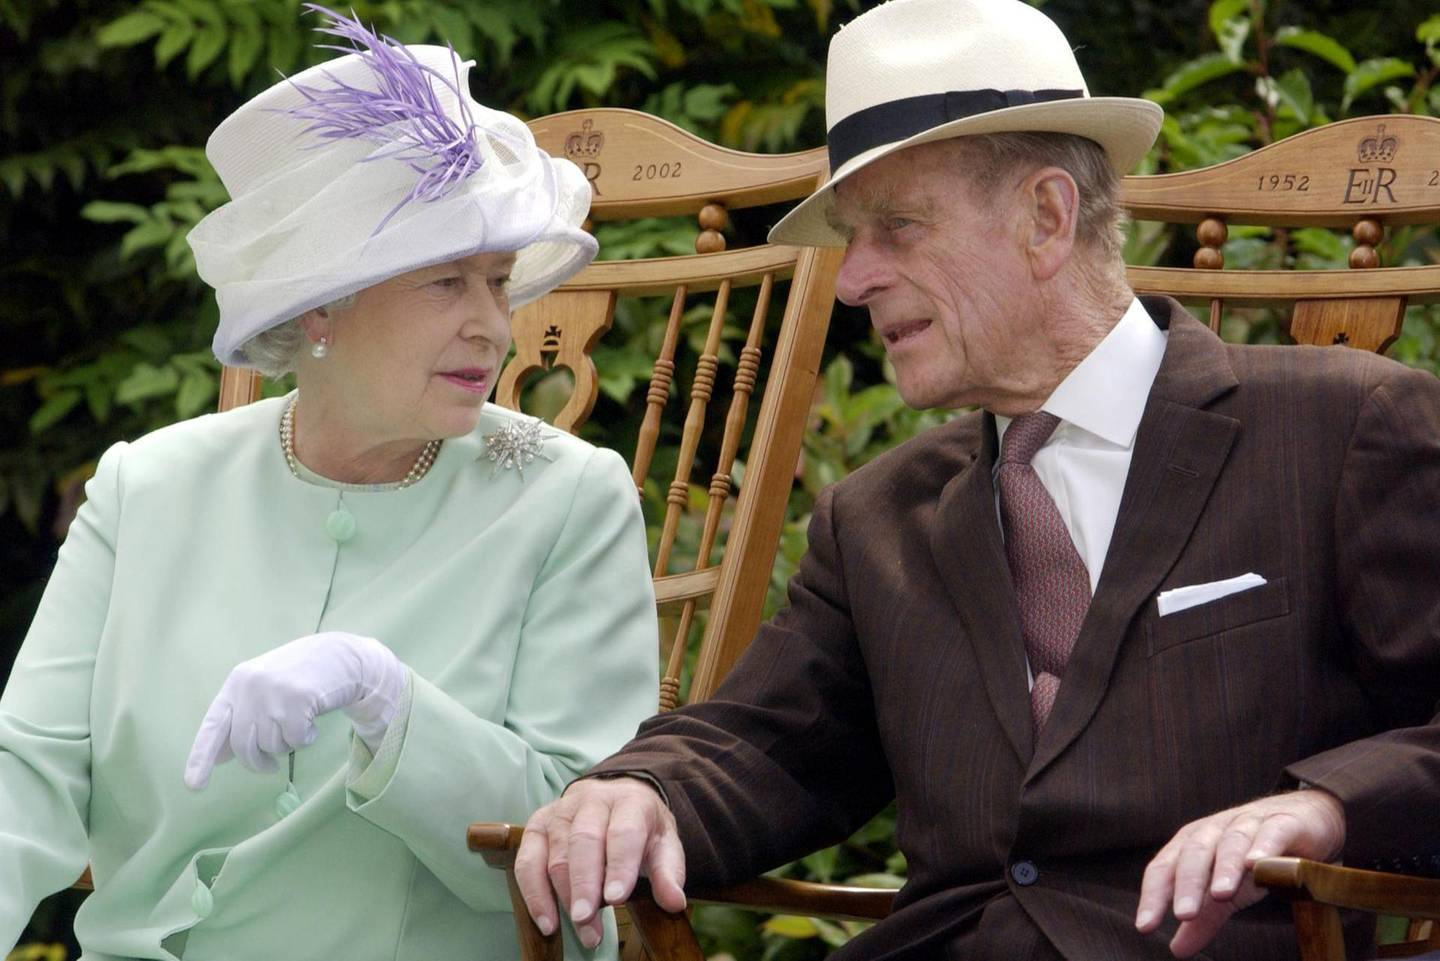 (FILES) In this file photo taken on July 17, 2002 Britain's Queen Elizabeth II (L) and Britain's Prince Philip, Duke of Edinburgh (R) chat while seated during a musical performance in the Abbey Gardens, Bury St Edmunds, during her Golden Jubilee visit to Suffolk, east of England. Prince Philip, the 98-year-old husband of Queen Elizabeth II, went into hospital on Friday, December 20, 2019 for precautionary treatment on a pre-existing condition, Buckingham Palace said. / AFP / Fiona HANSON